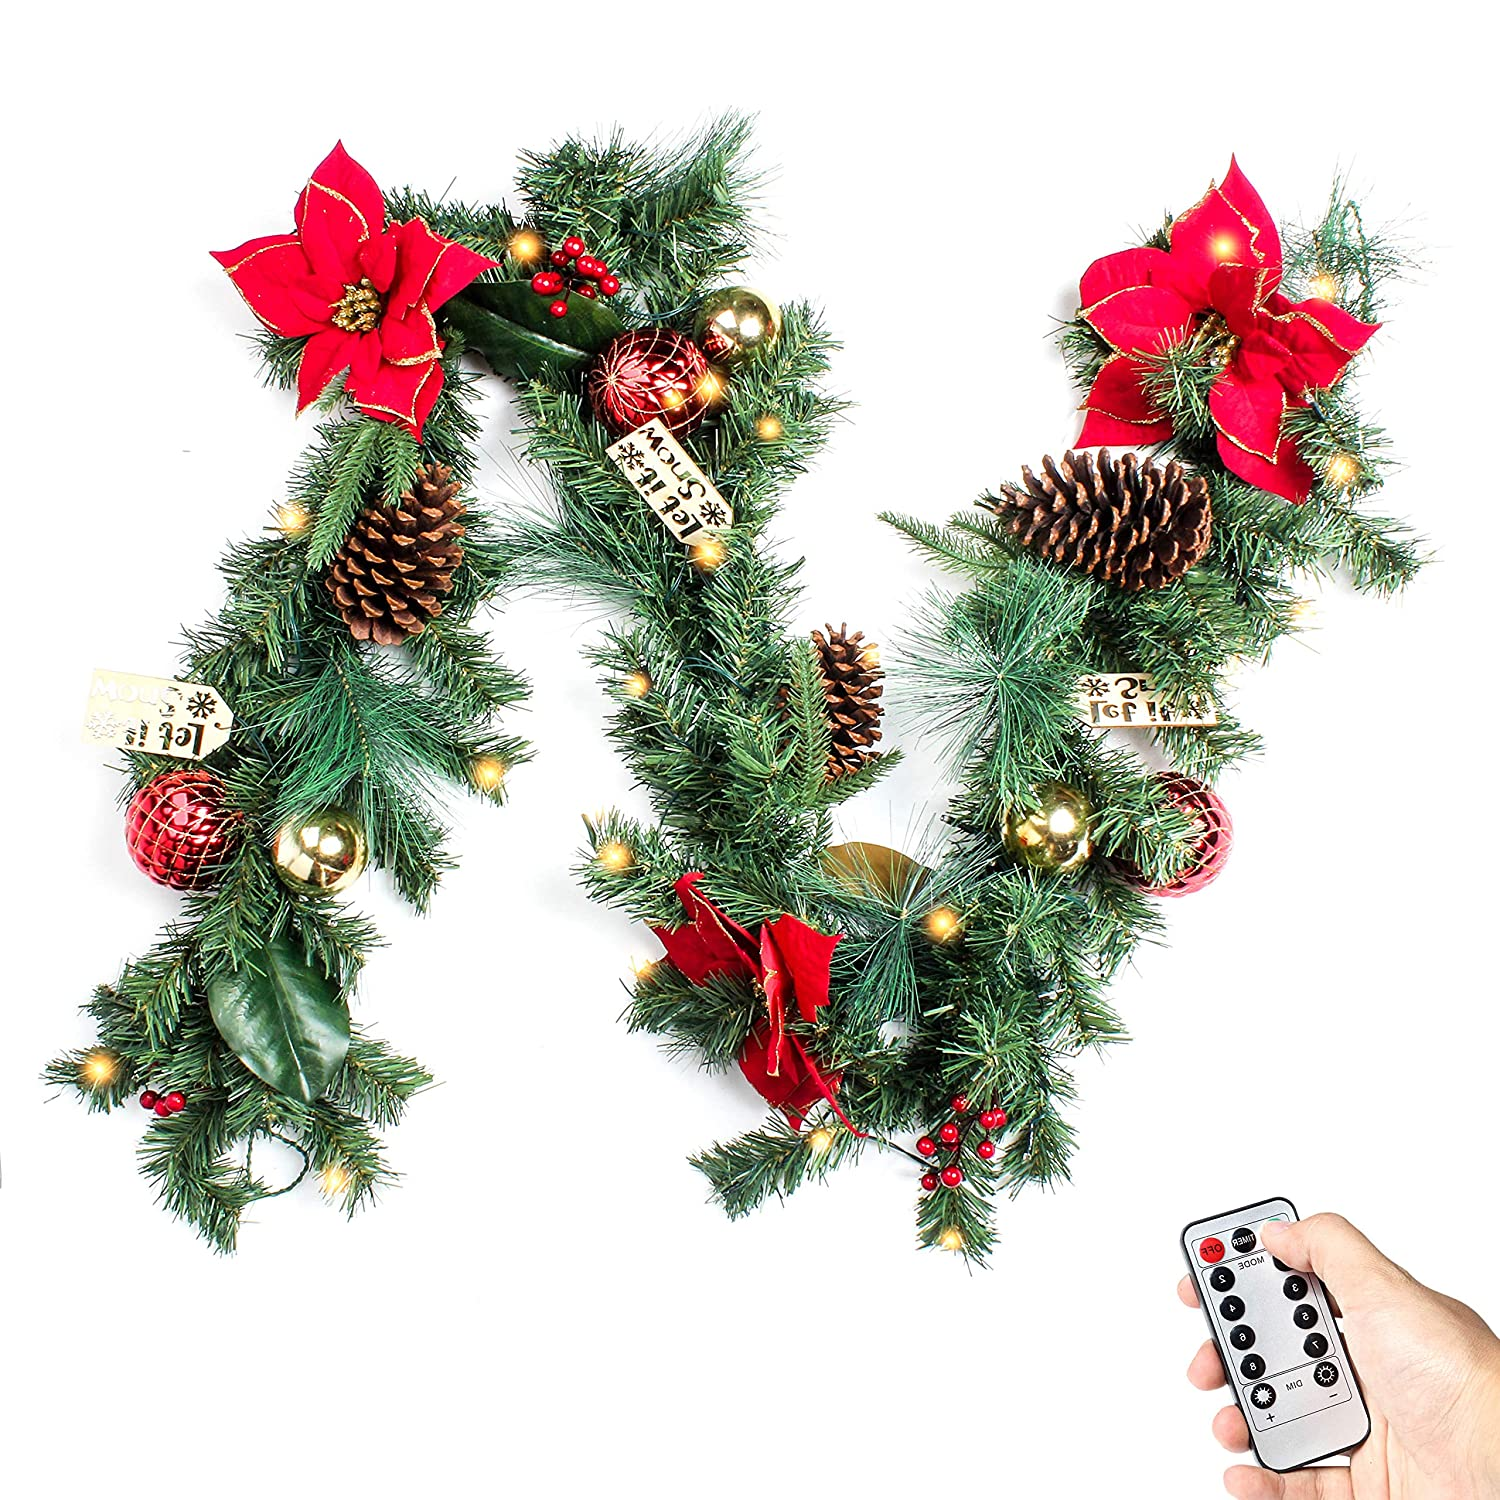 Costyleen 6 Feet Christmas Garland Decorations Outdoor Indoor Artificial  Pine Wreath Xmas Decors with Remote Controlled 30 LED Lights, Ball Ornaments  Pine ...